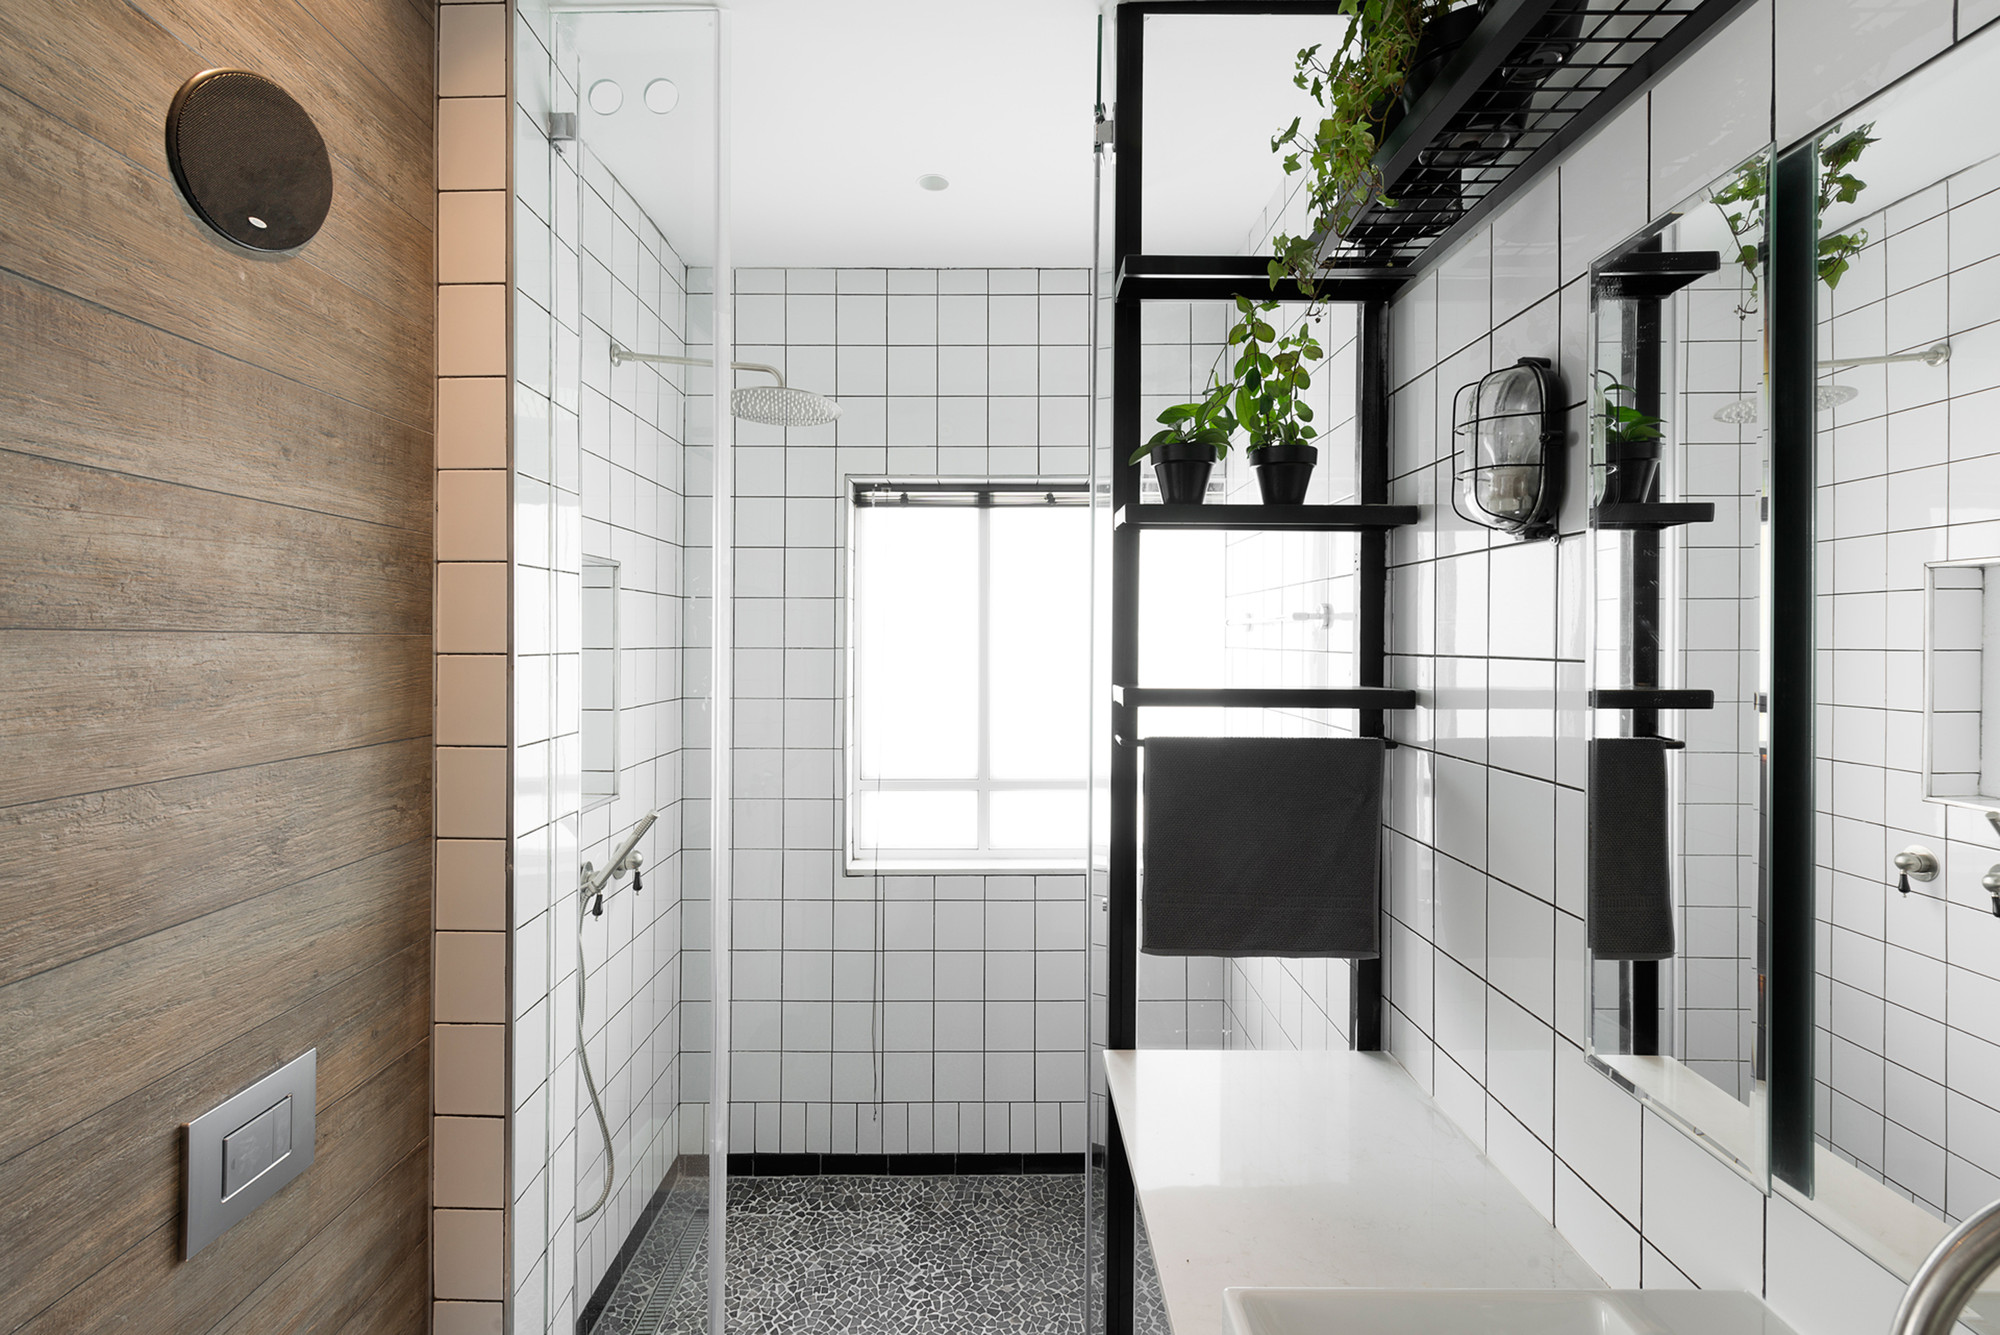 Tod Im Badezimmer Gallery Of Bauhaus Apartment Redesign Rust Architects 4